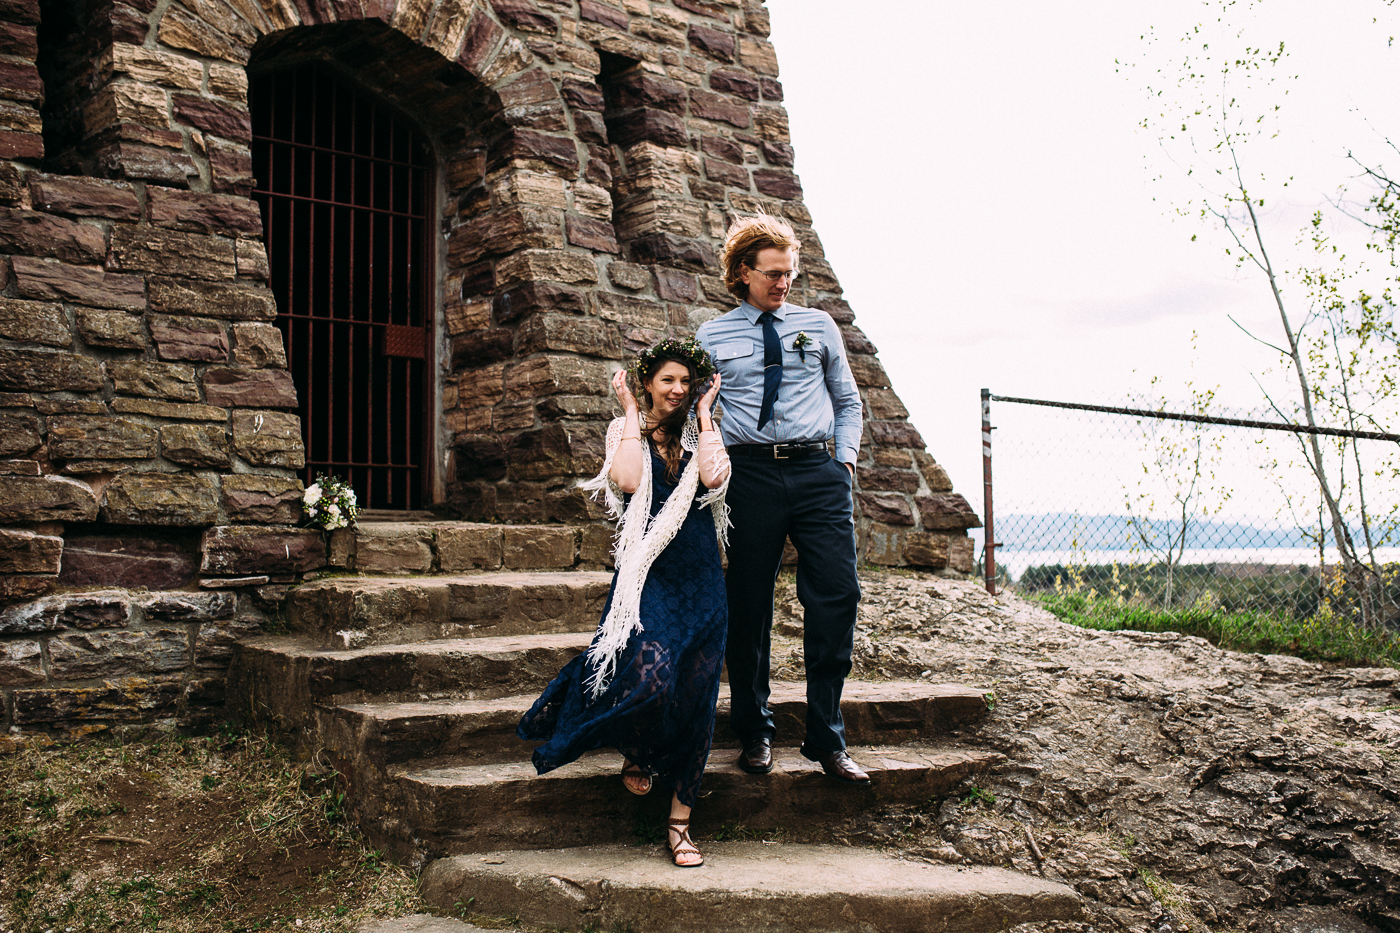 erinwheat photography-jplaurenelopement6660